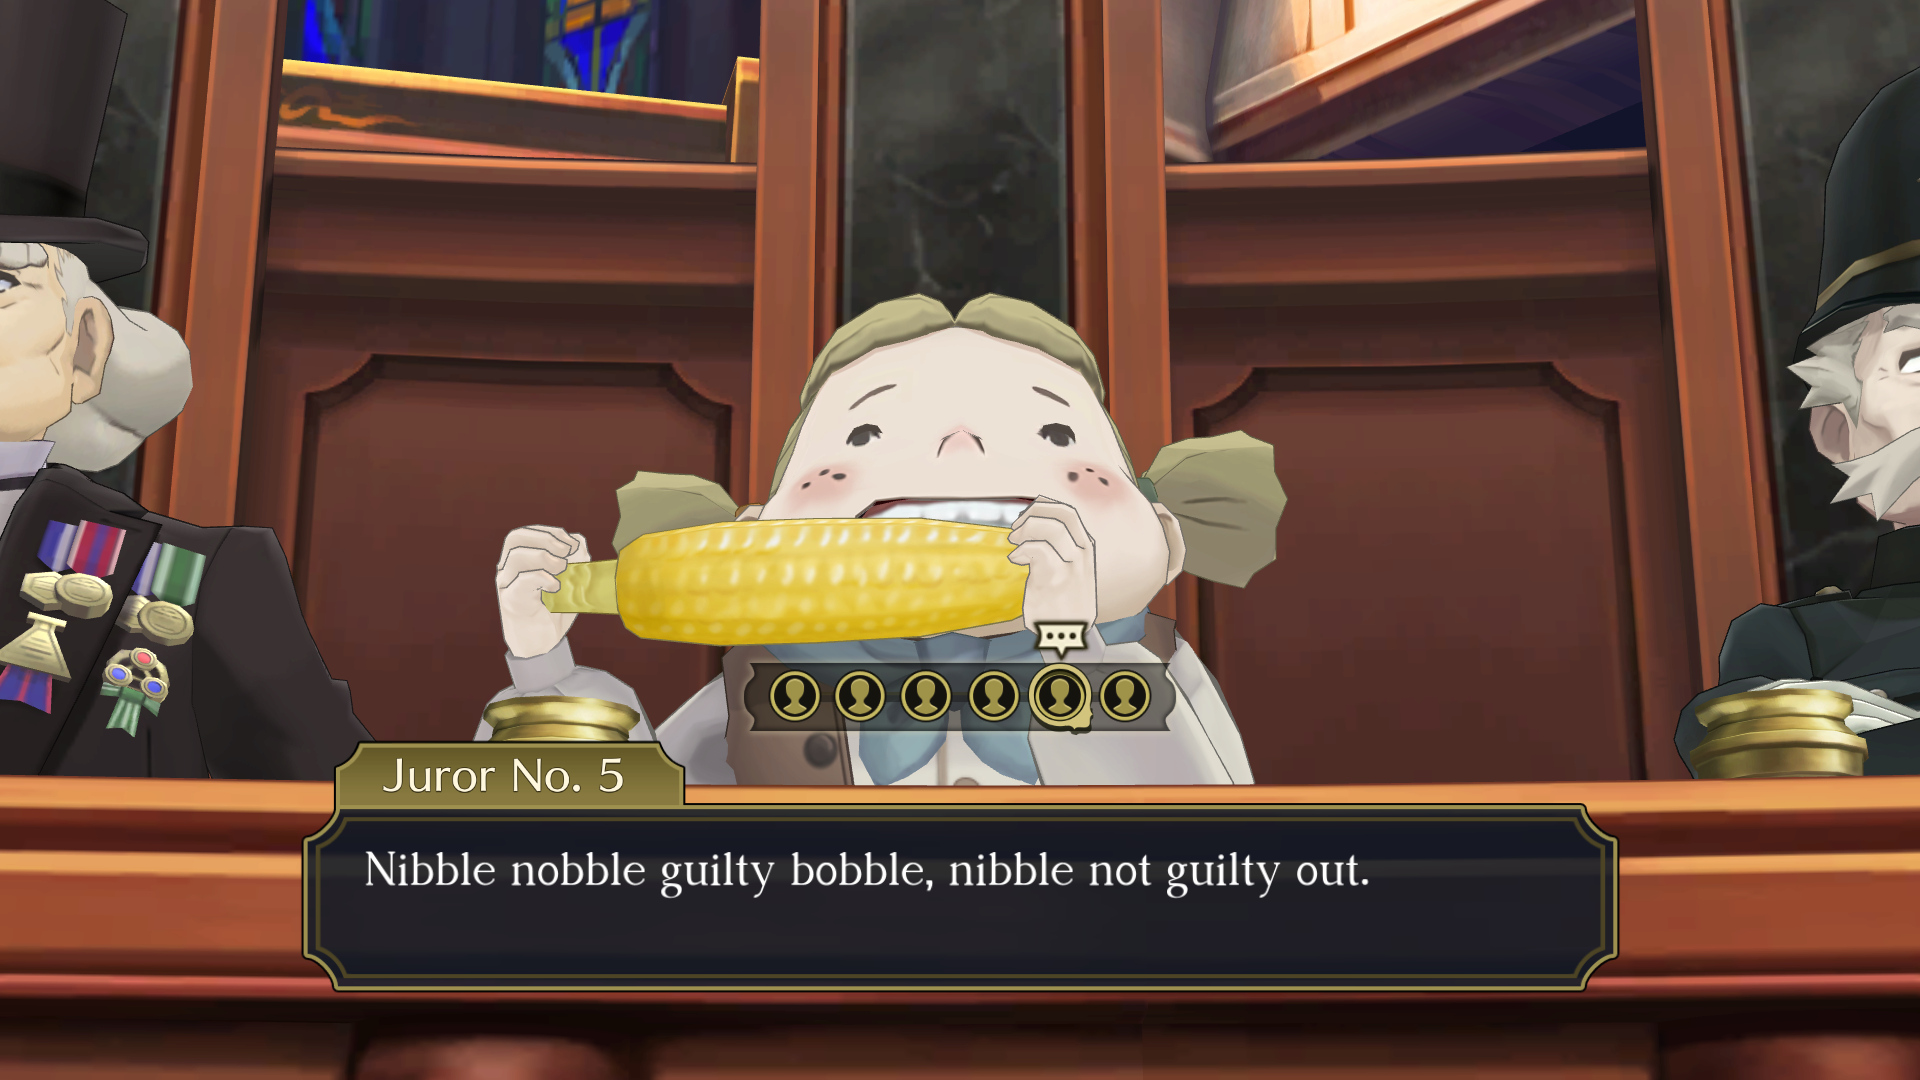 """The Great Ace Attorney Chronicles - Juror Number 5 says, while eating corn-on-the-cob: """"Nibble nobble guilty bobble, nibble not guilty out."""""""